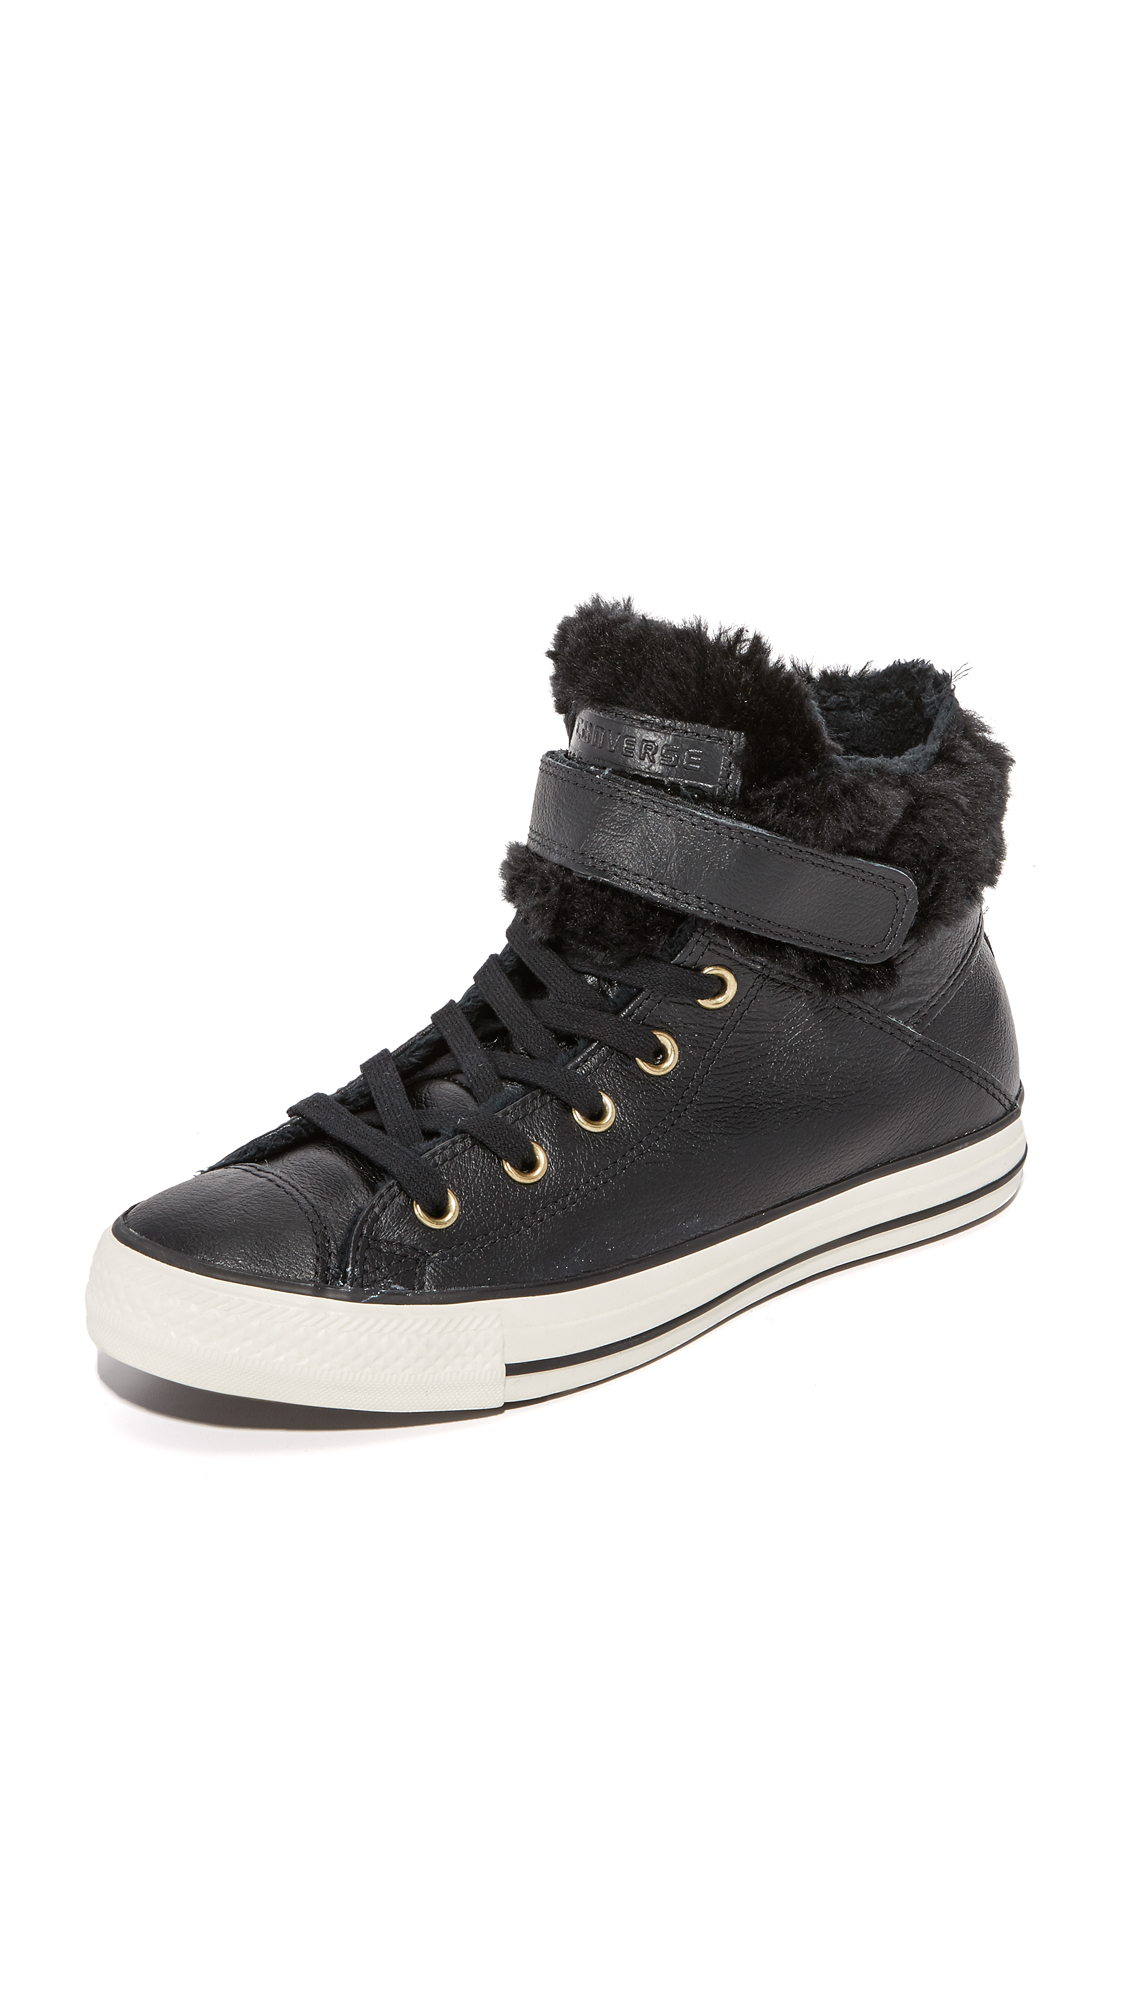 converse chuck taylor all star brea leather/fur hi